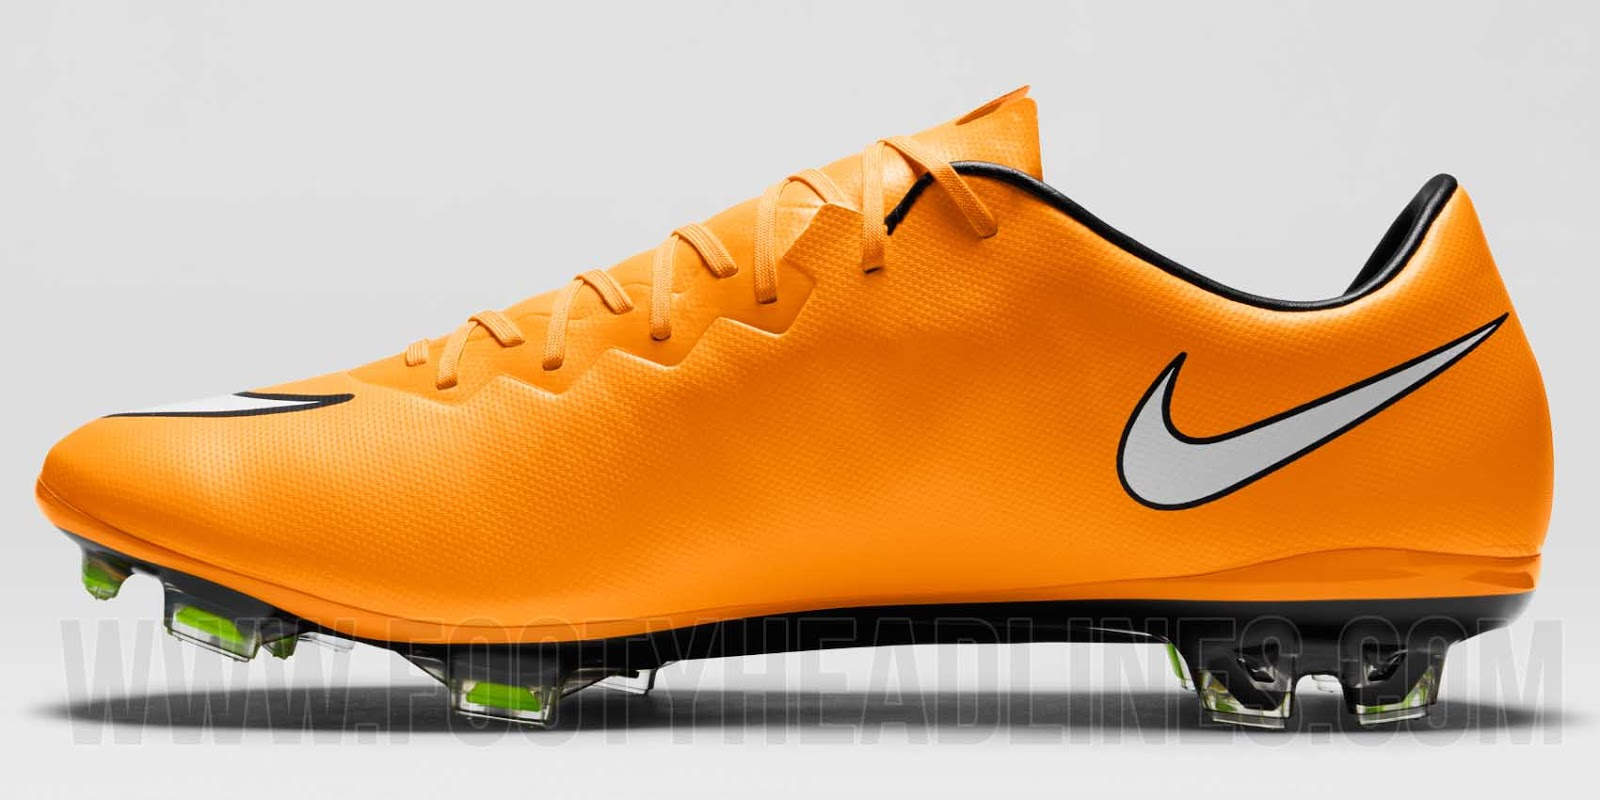 adidas f50 orange nike mercurial vapor x 14 15 boot. Black Bedroom Furniture Sets. Home Design Ideas